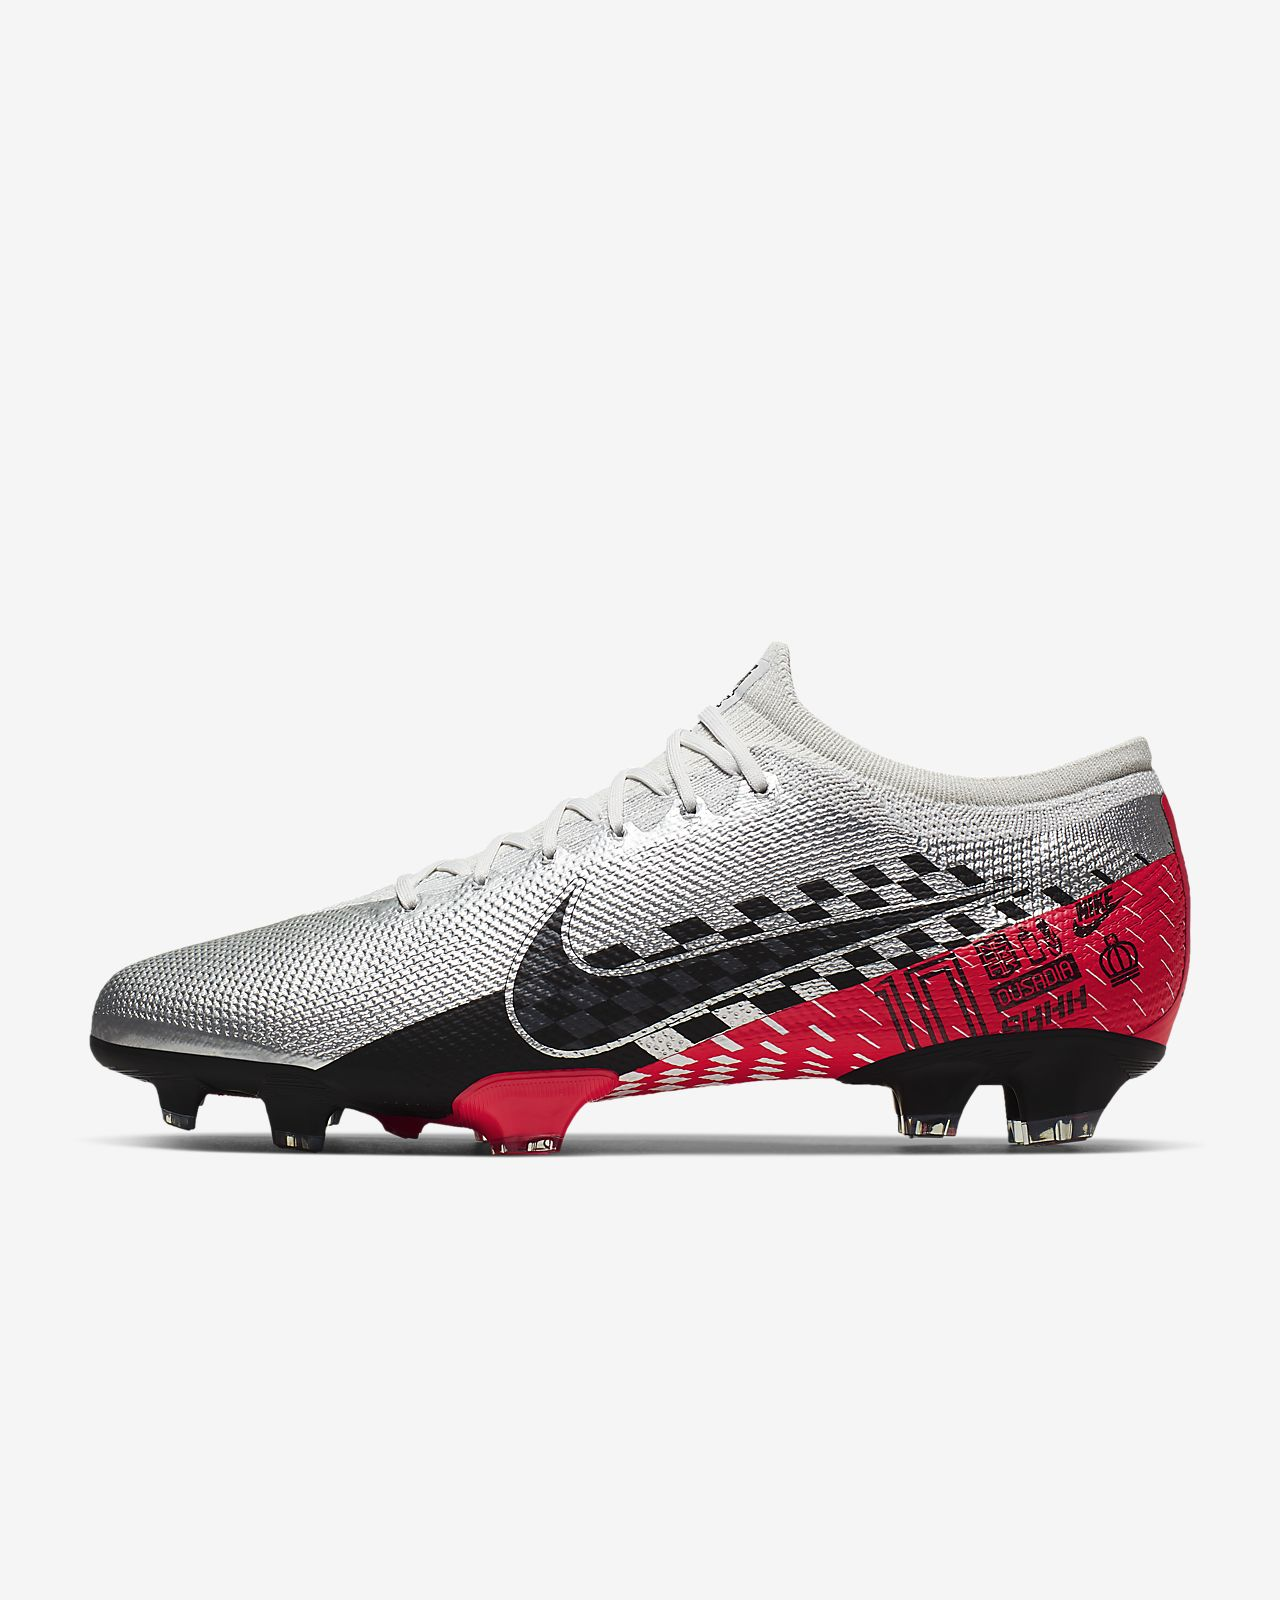 Nike Mercurial Vapor 13 Pro Neymar Jr. FG Firm-Ground Football Boot